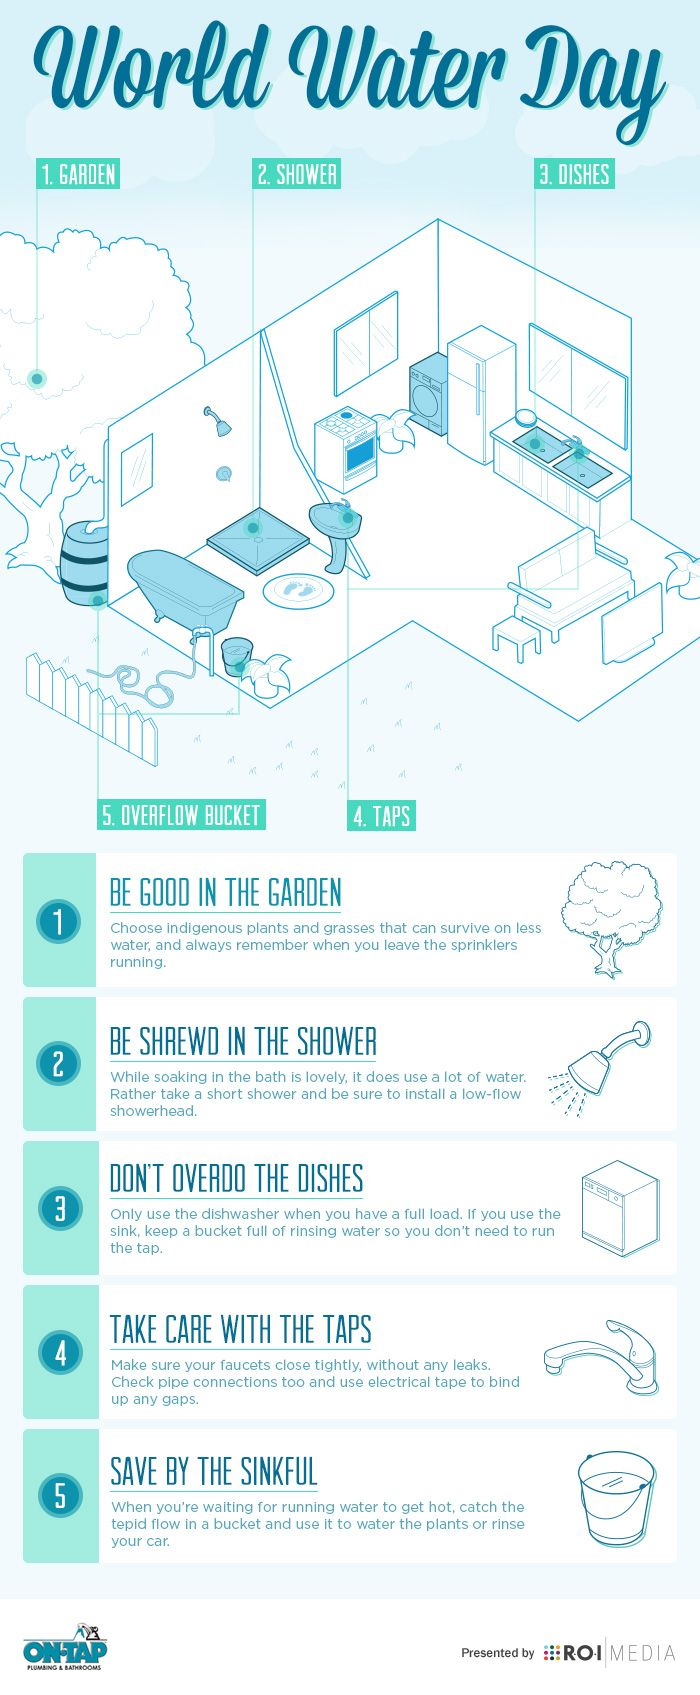 World Water Day Info-graphic 5 tips! #worldwaterday #water #waterwise #saving #environmental #eco #goinggreen #tips #tricks #watersmart #Home #DIY #information #graphic #ecofriendly